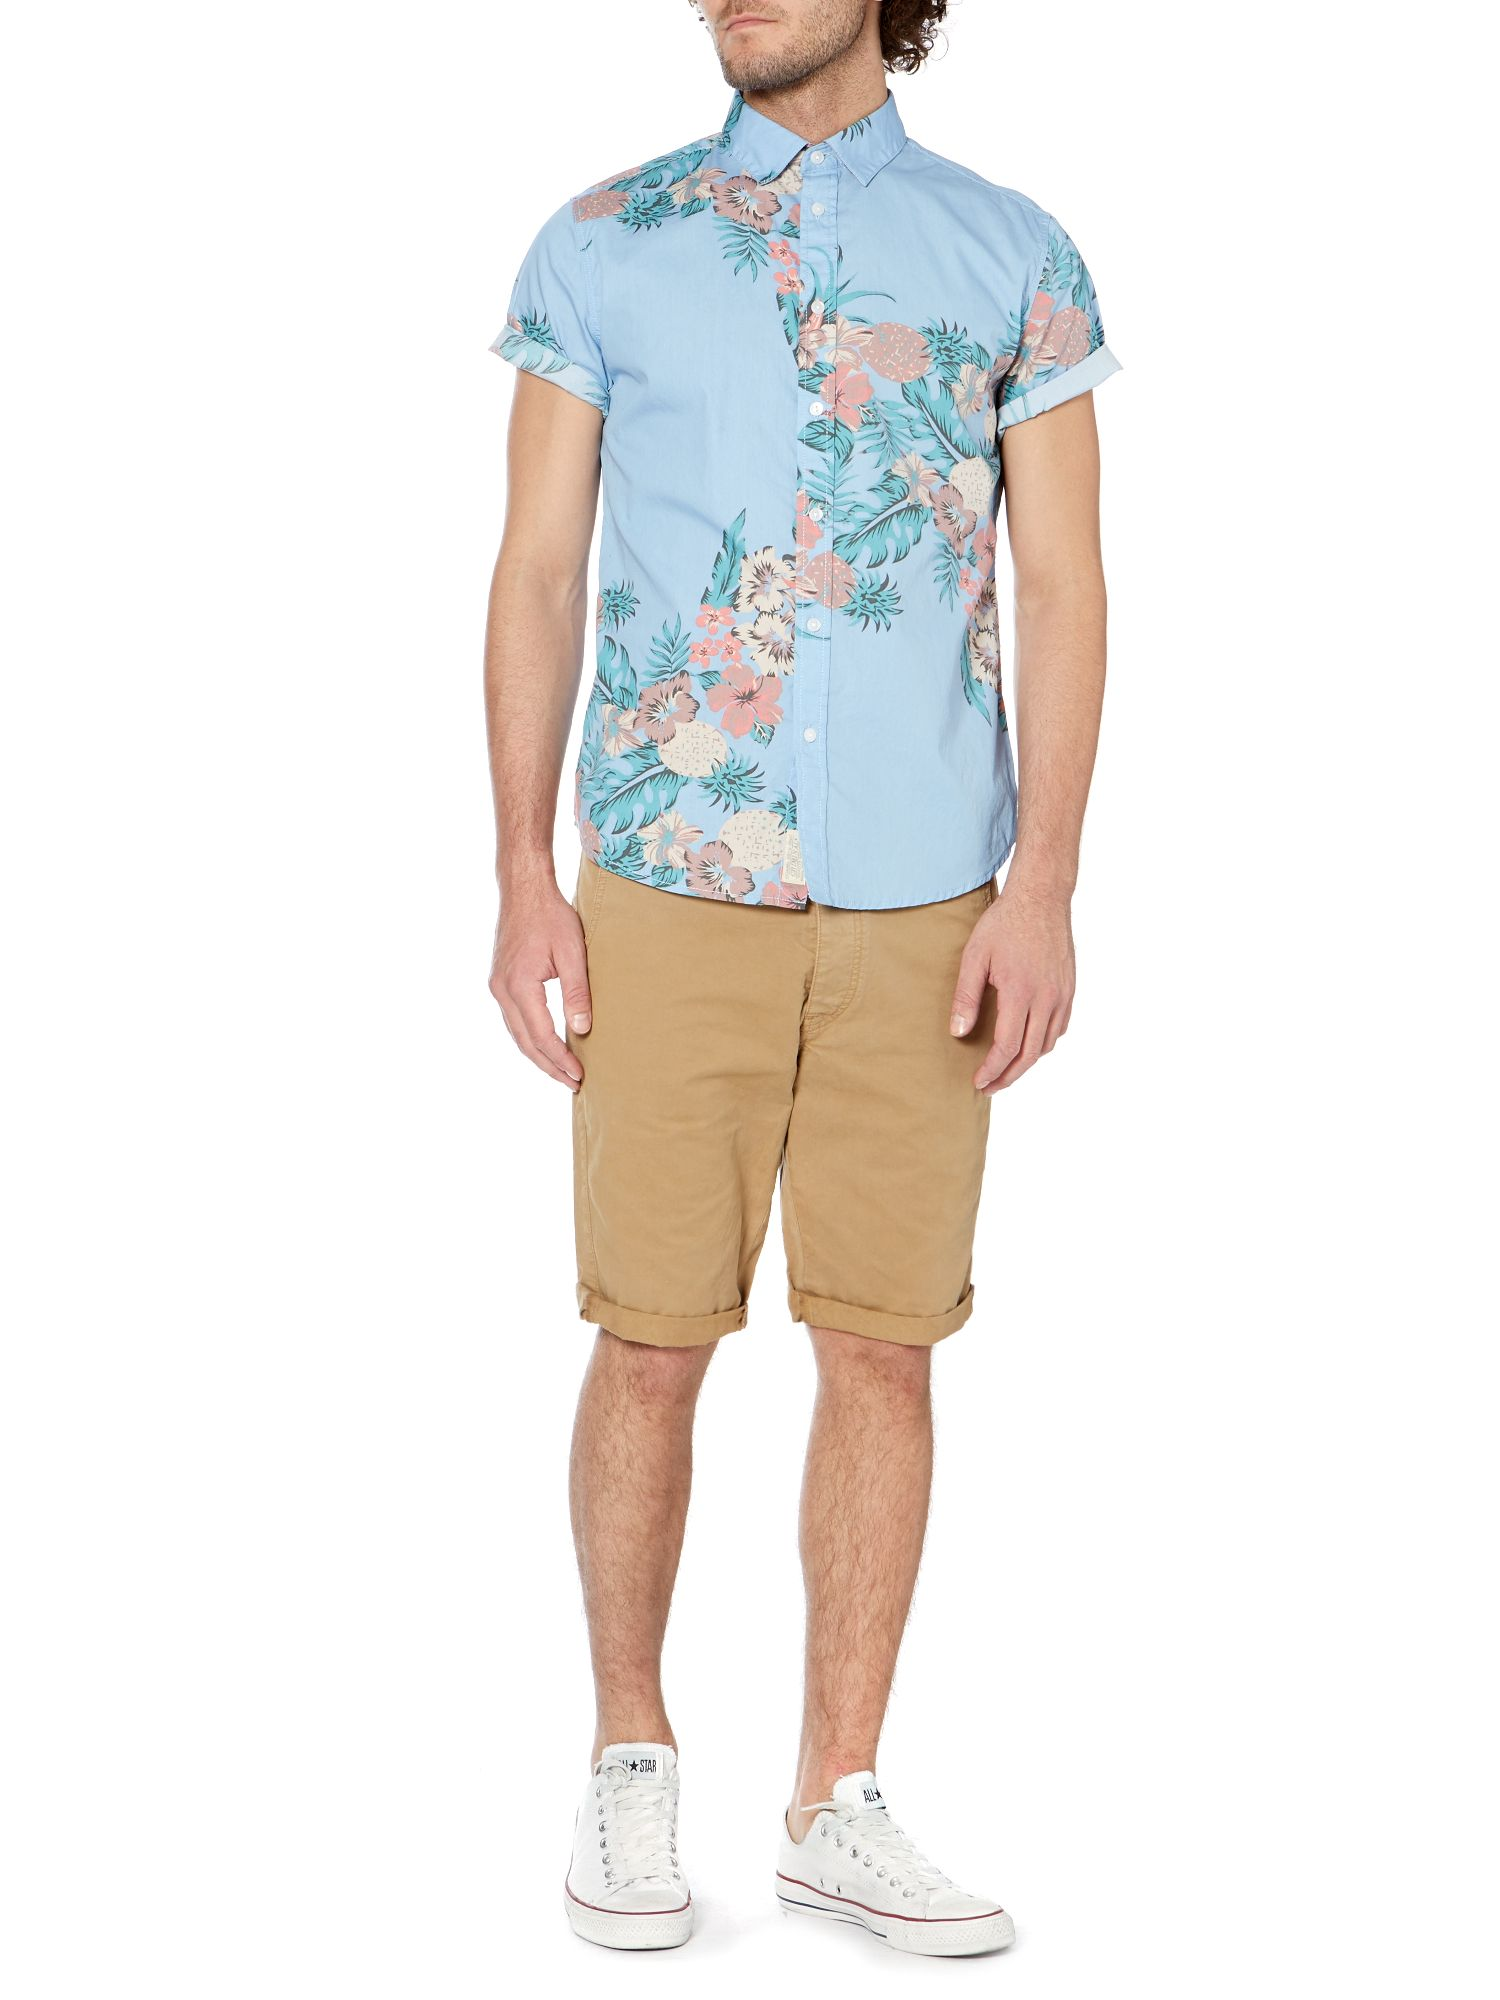 Huntington floral short sleeve shirt